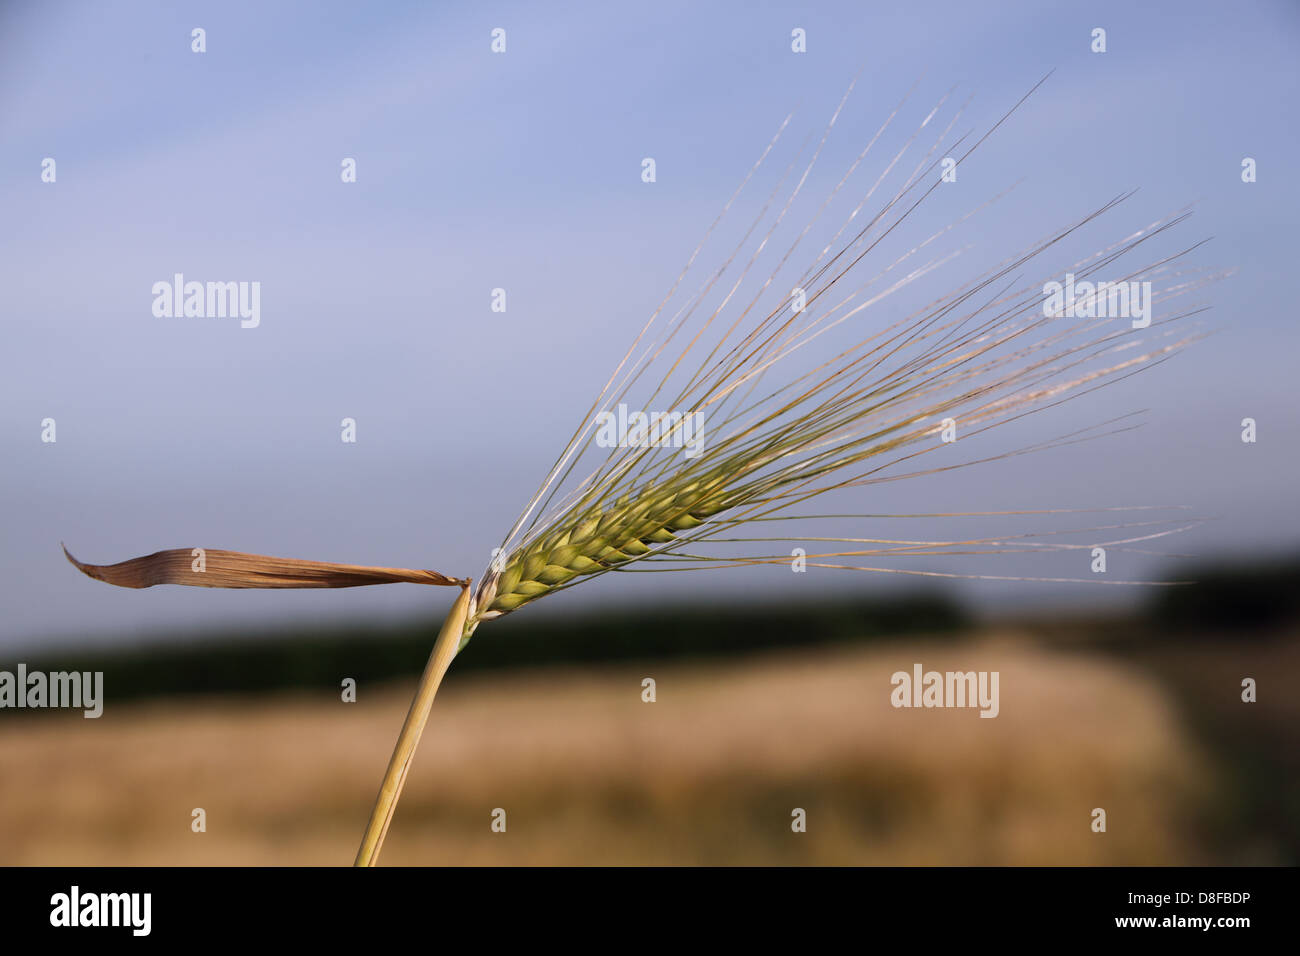 Ear of wheat in a field England UK - Stock Image